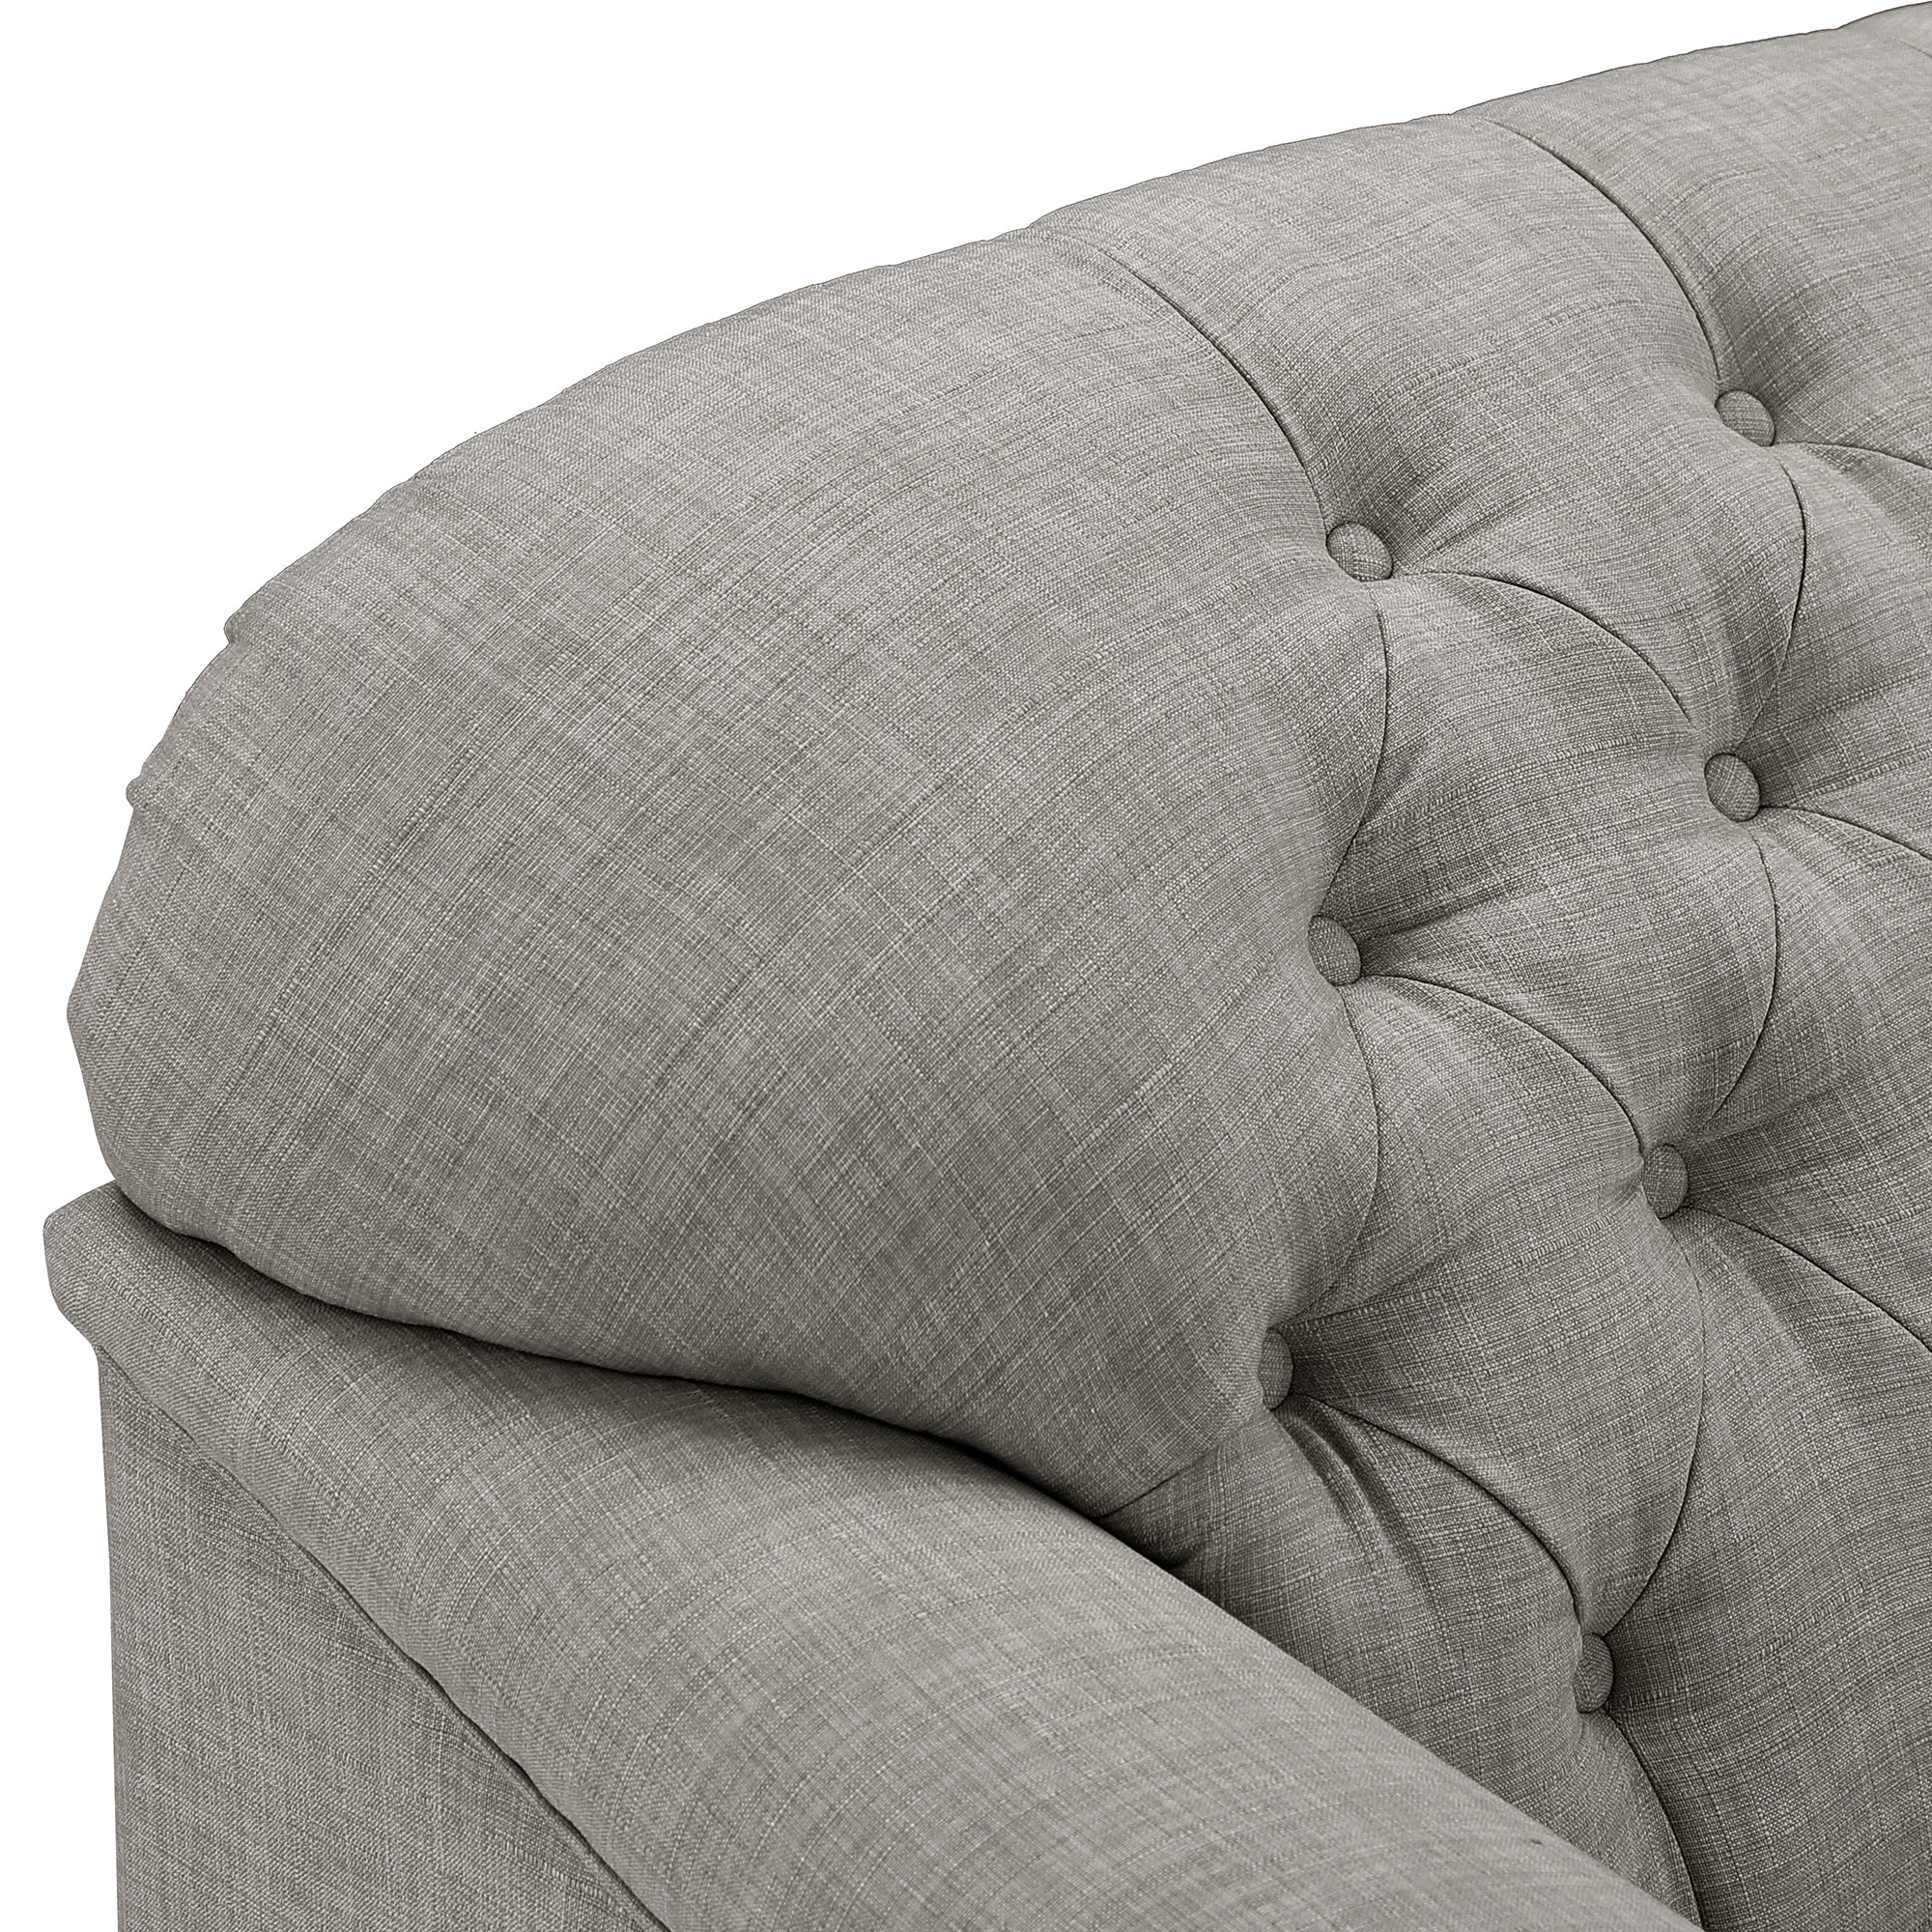 Walnut Finish Linen Chesterfield Sofa - Grey Linen